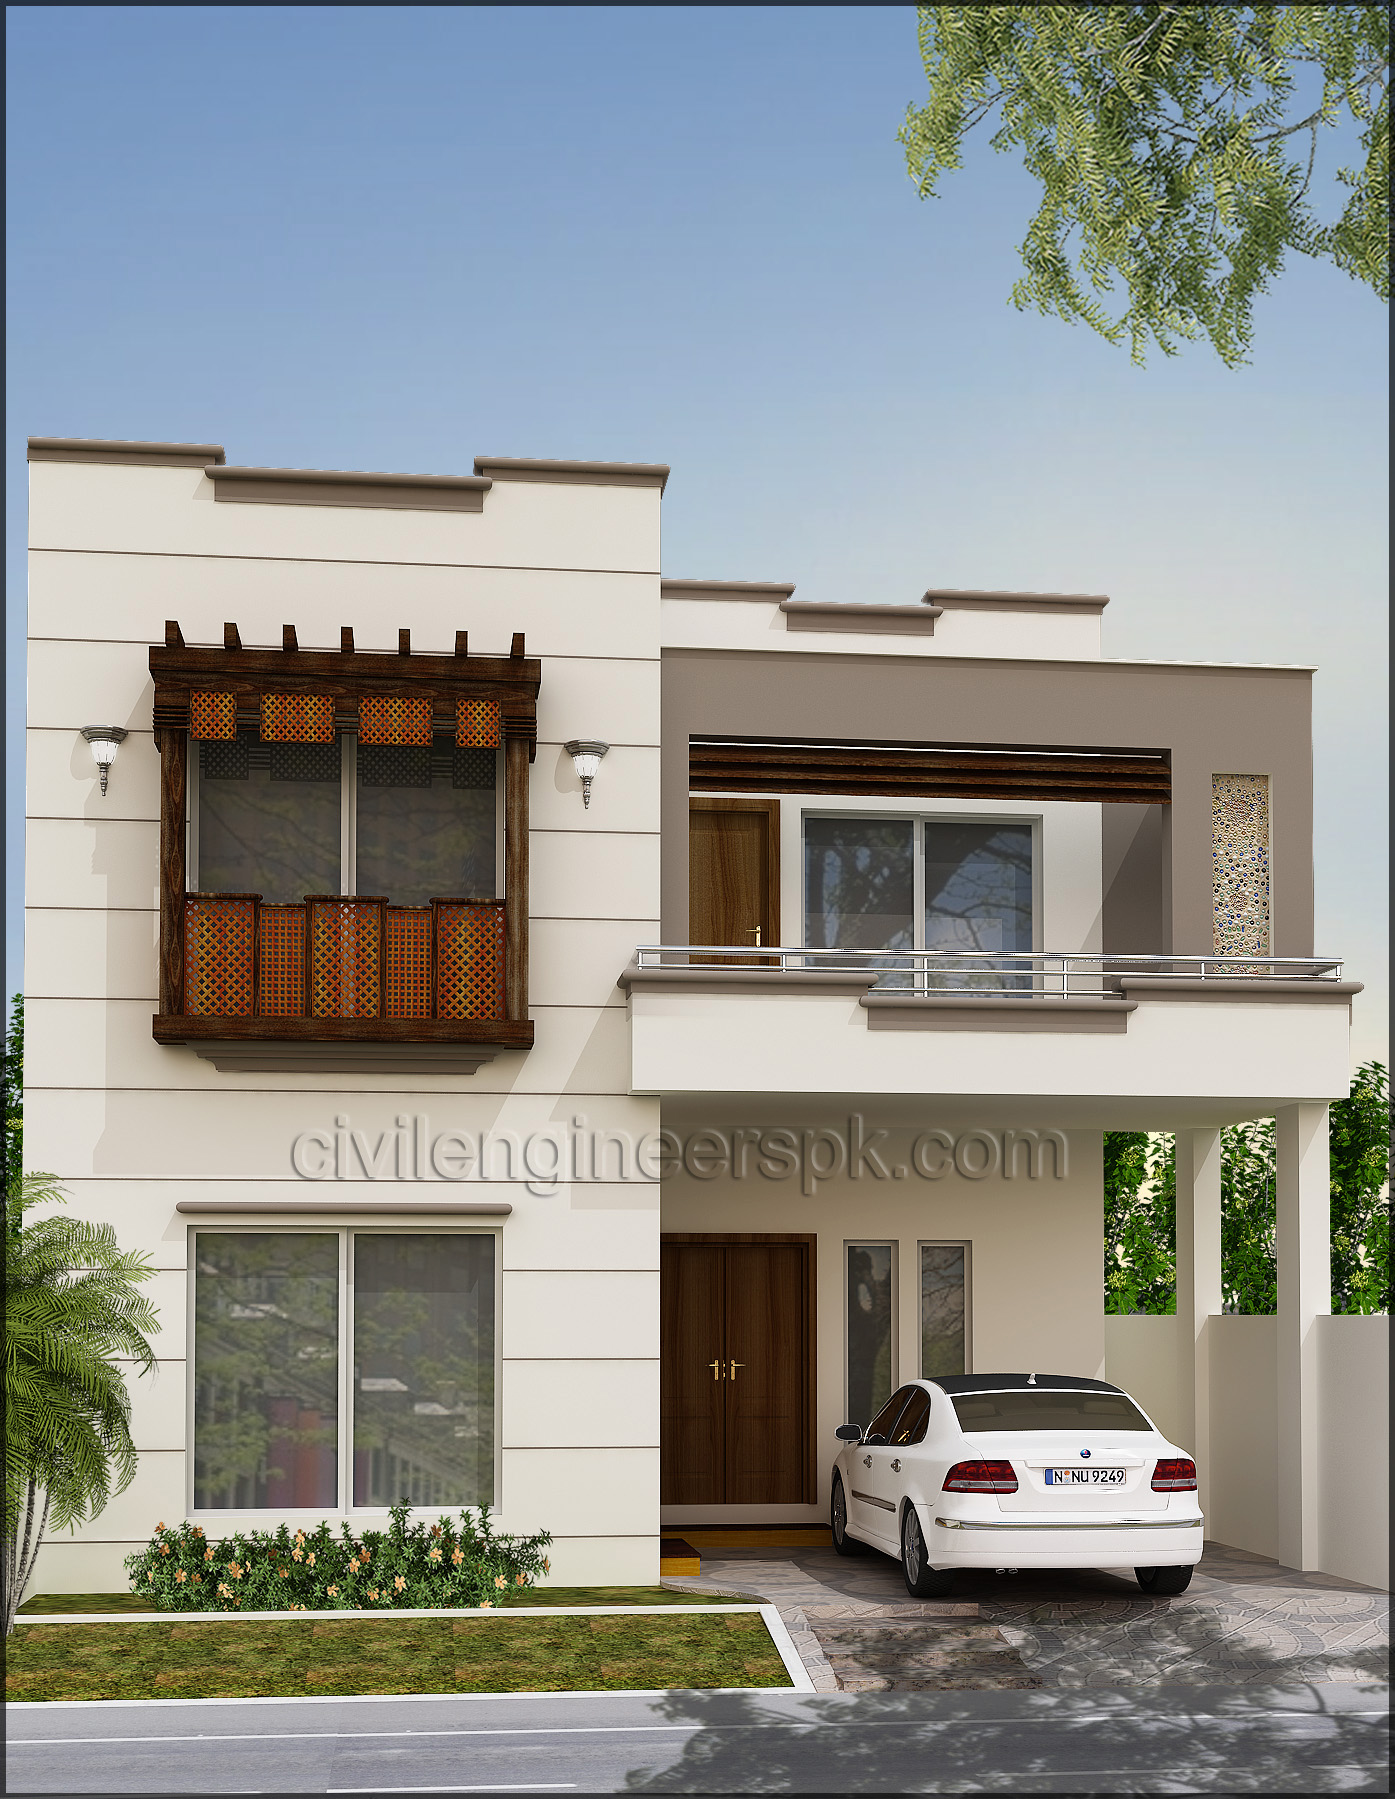 Plans For Small Homes Front Views Civil Engineers Pk